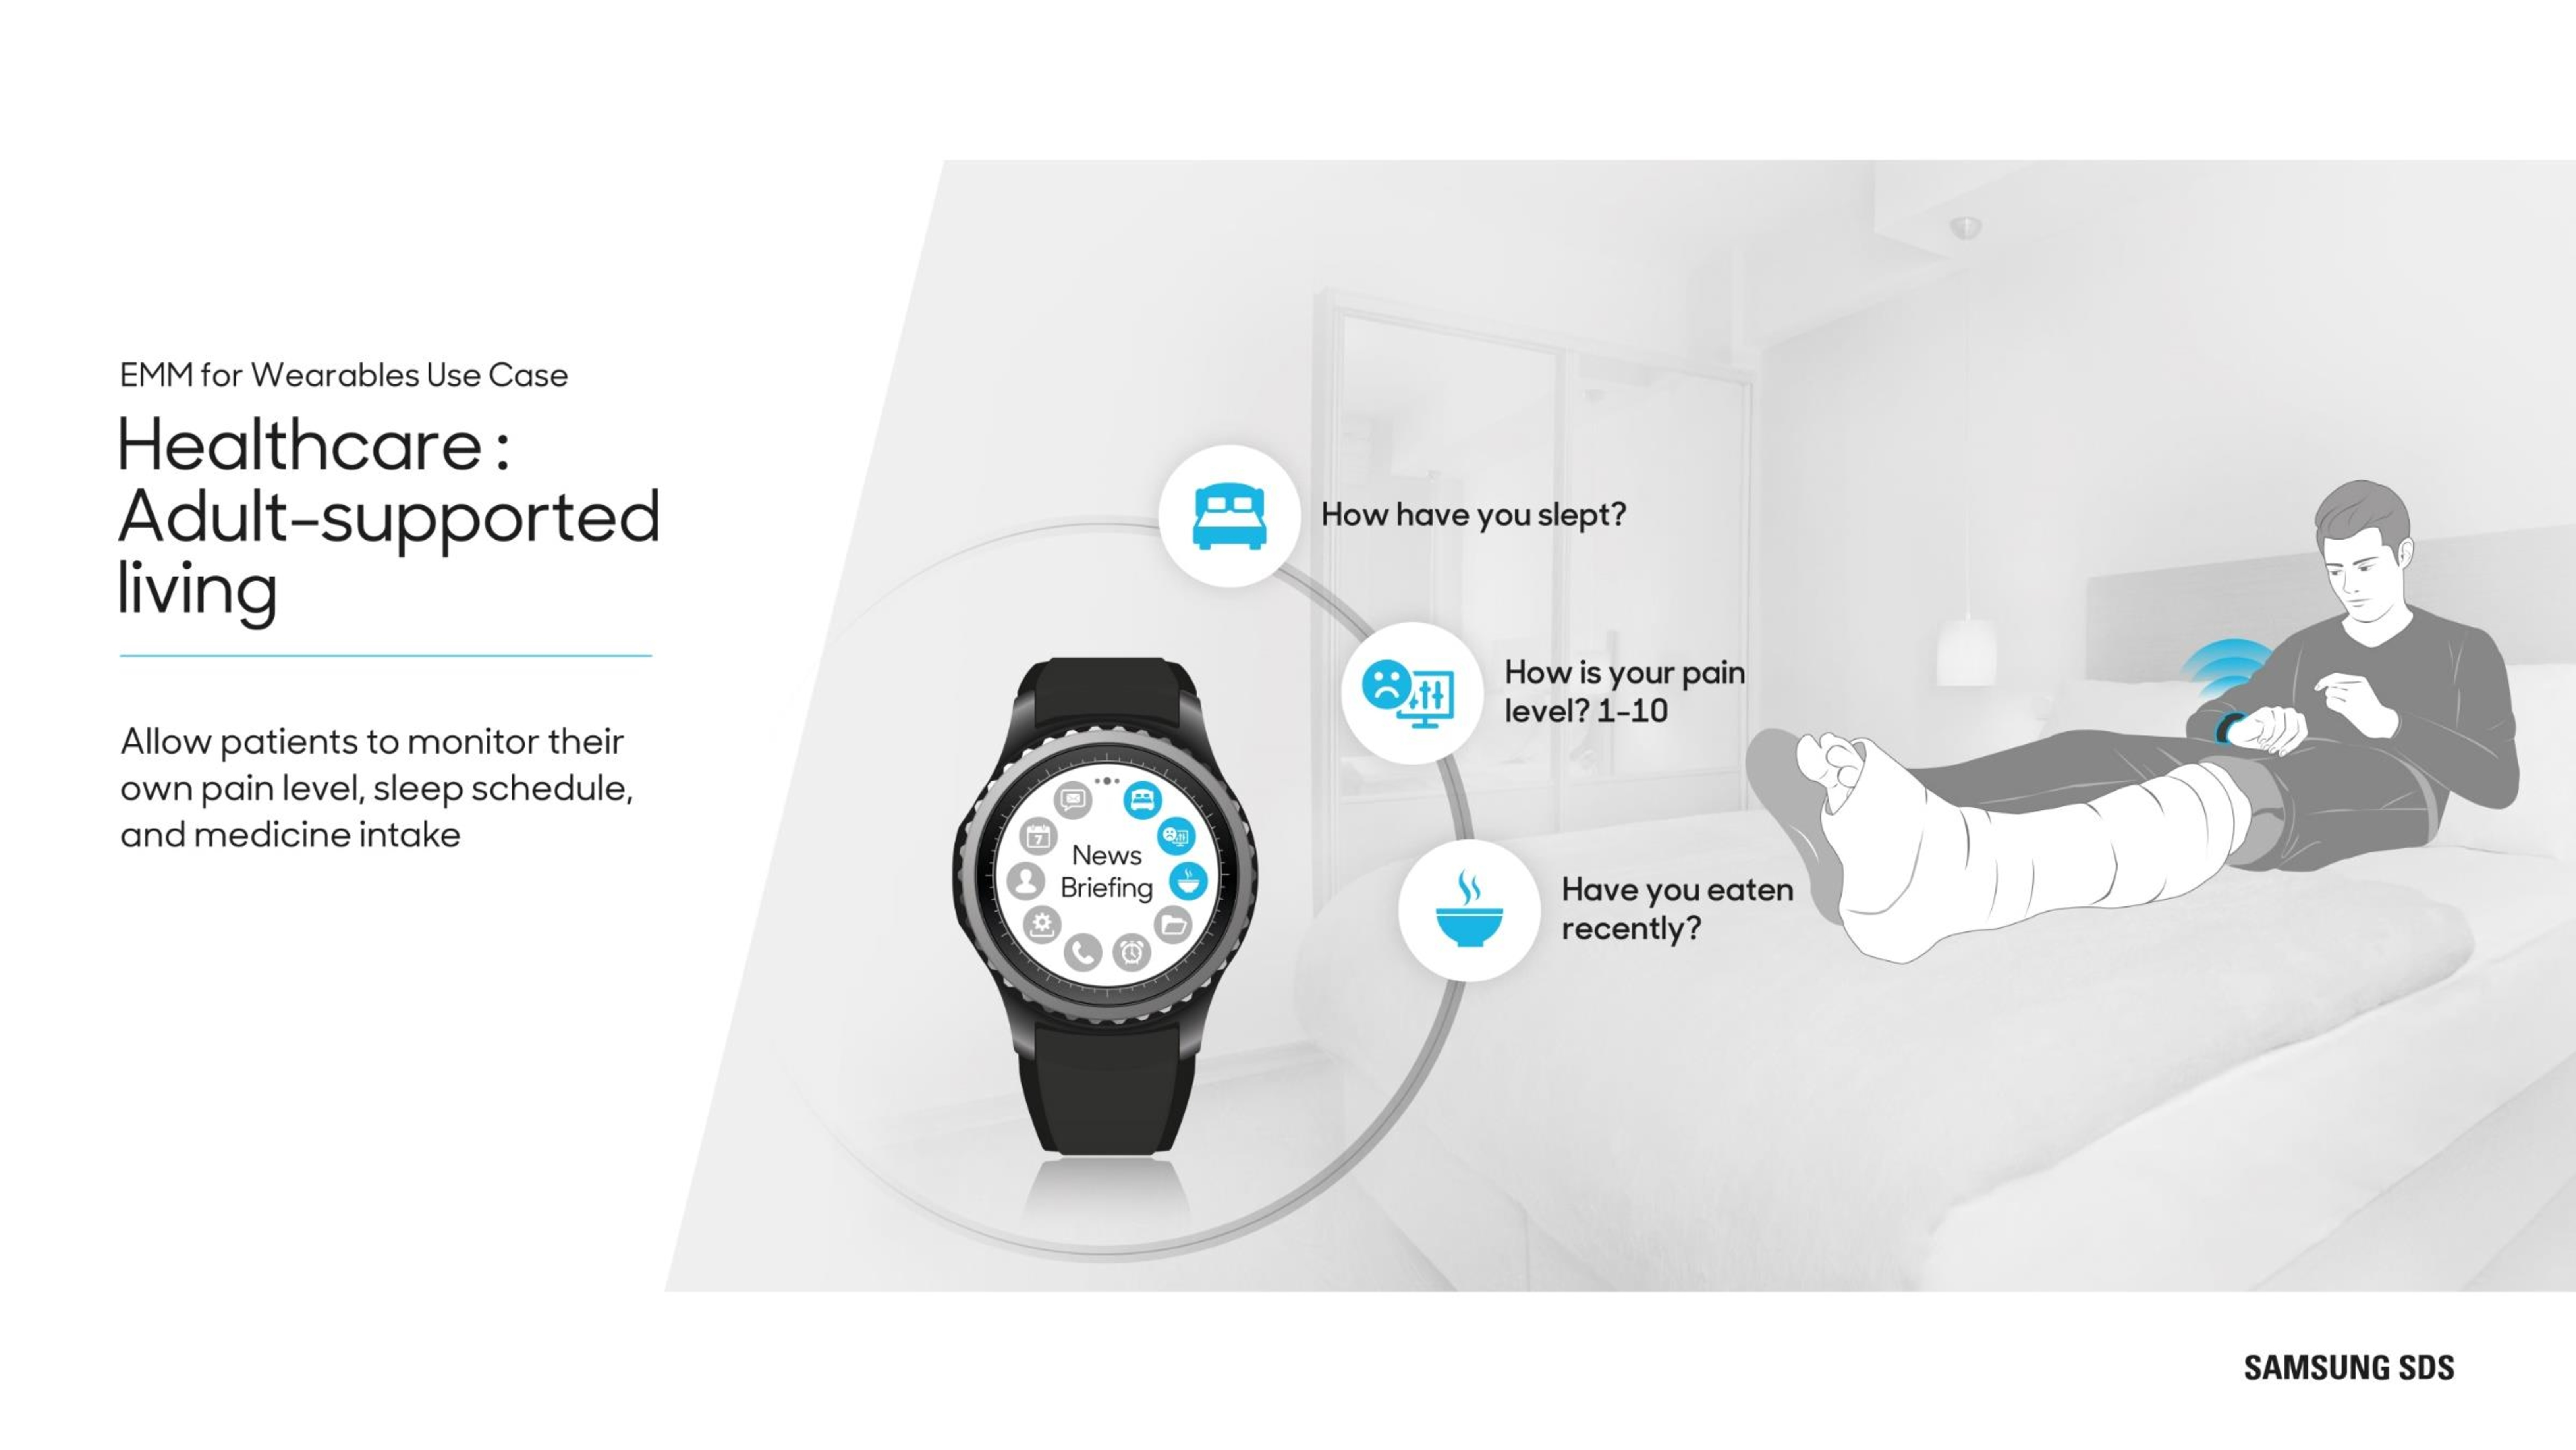 Wearables in Healthcare Allow patients to monitor their own pain level sleep schedule and medicine intake.